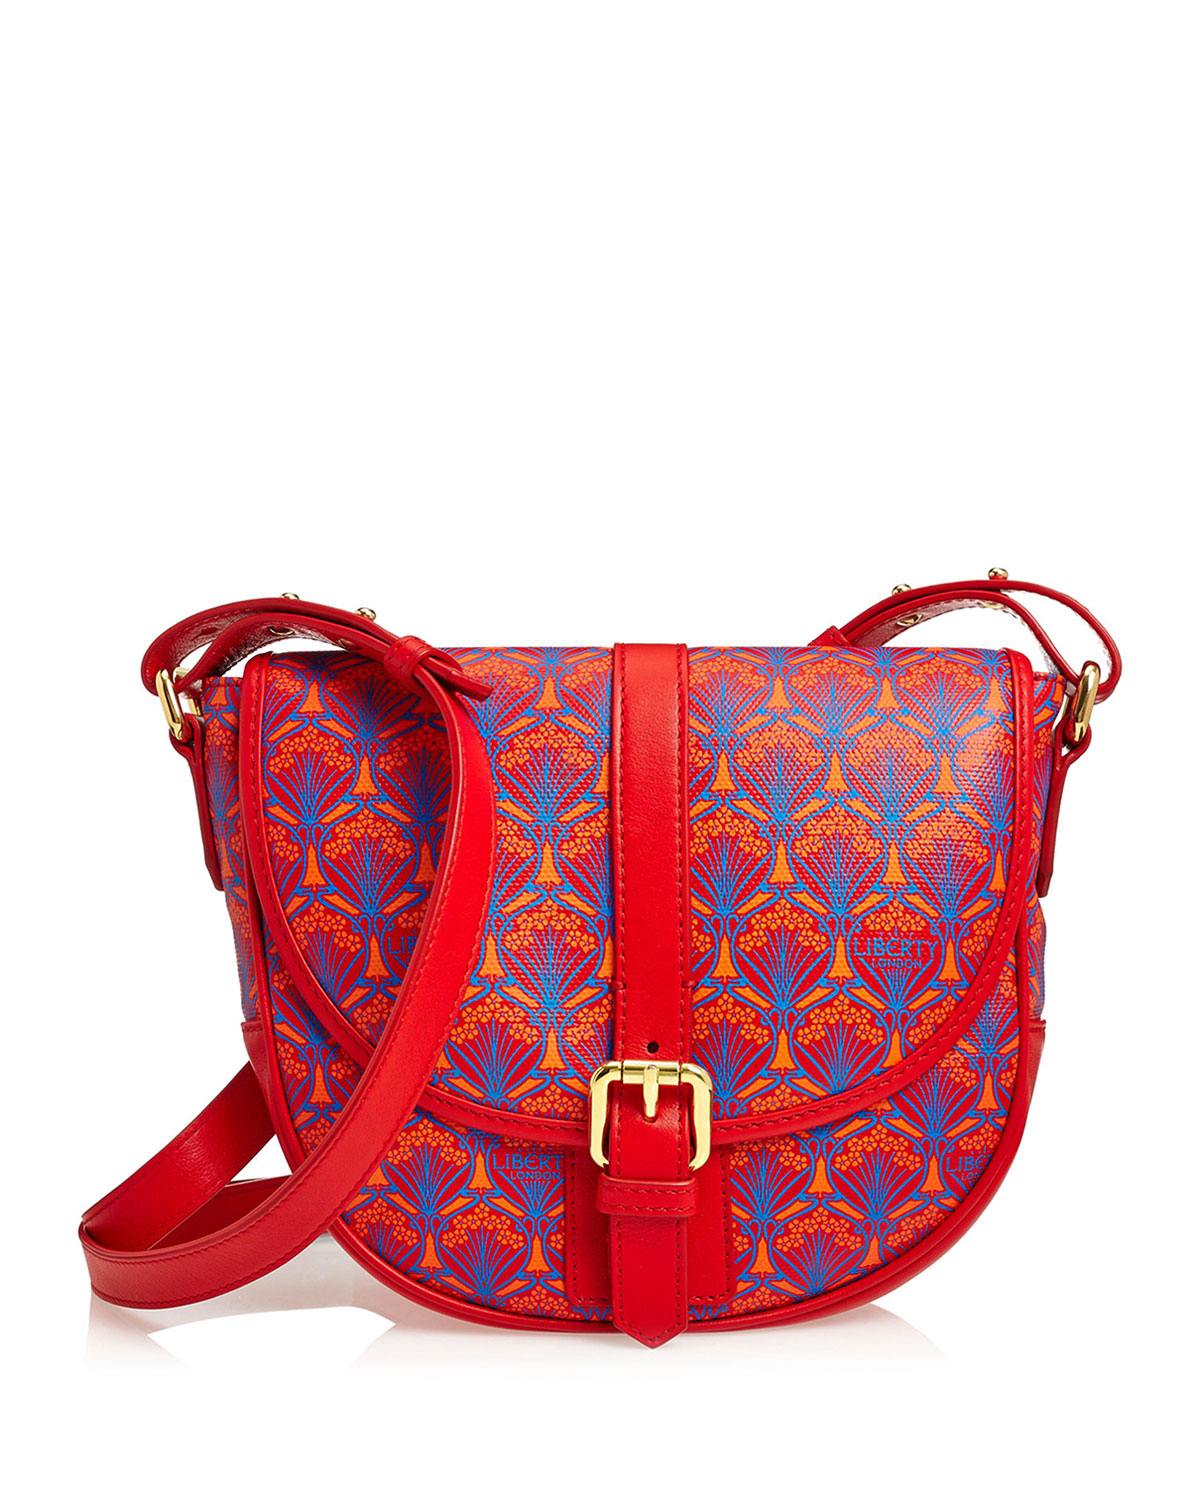 LIBERTY LONDON Carnaby Iphis Printed Crossbody Bag, Red in 80Red